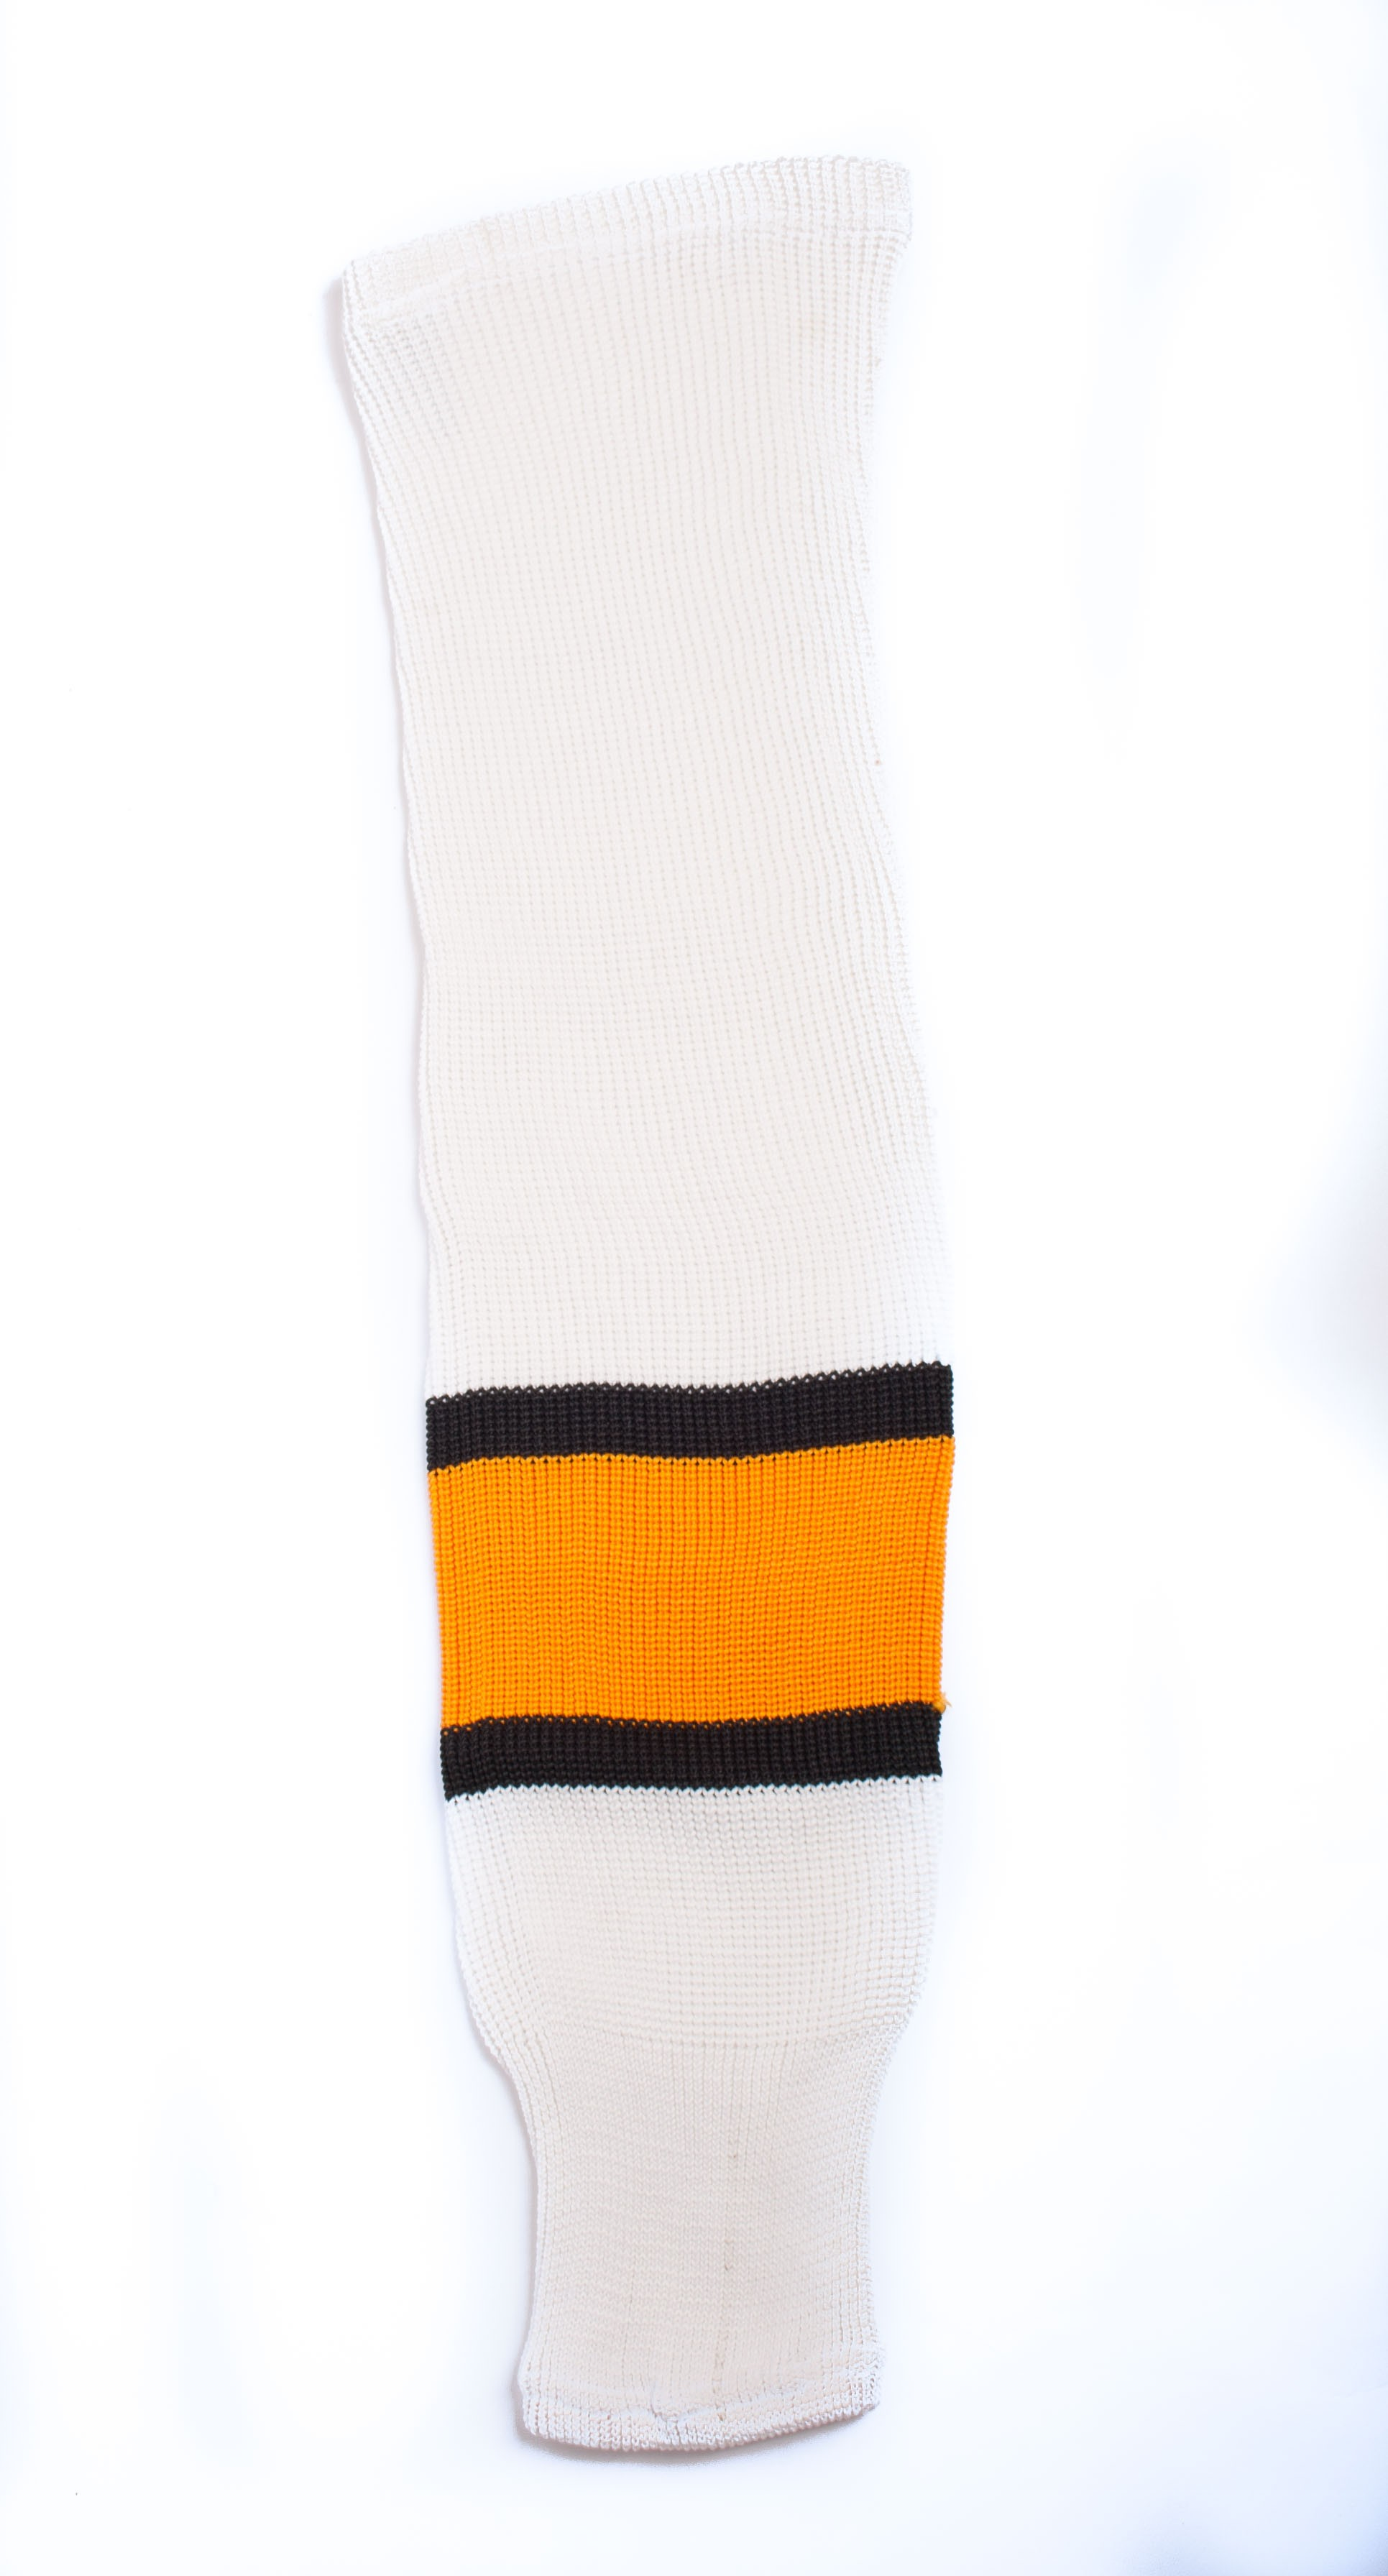 HOKEJAM.LV Knit Adult Hockey Socks#006